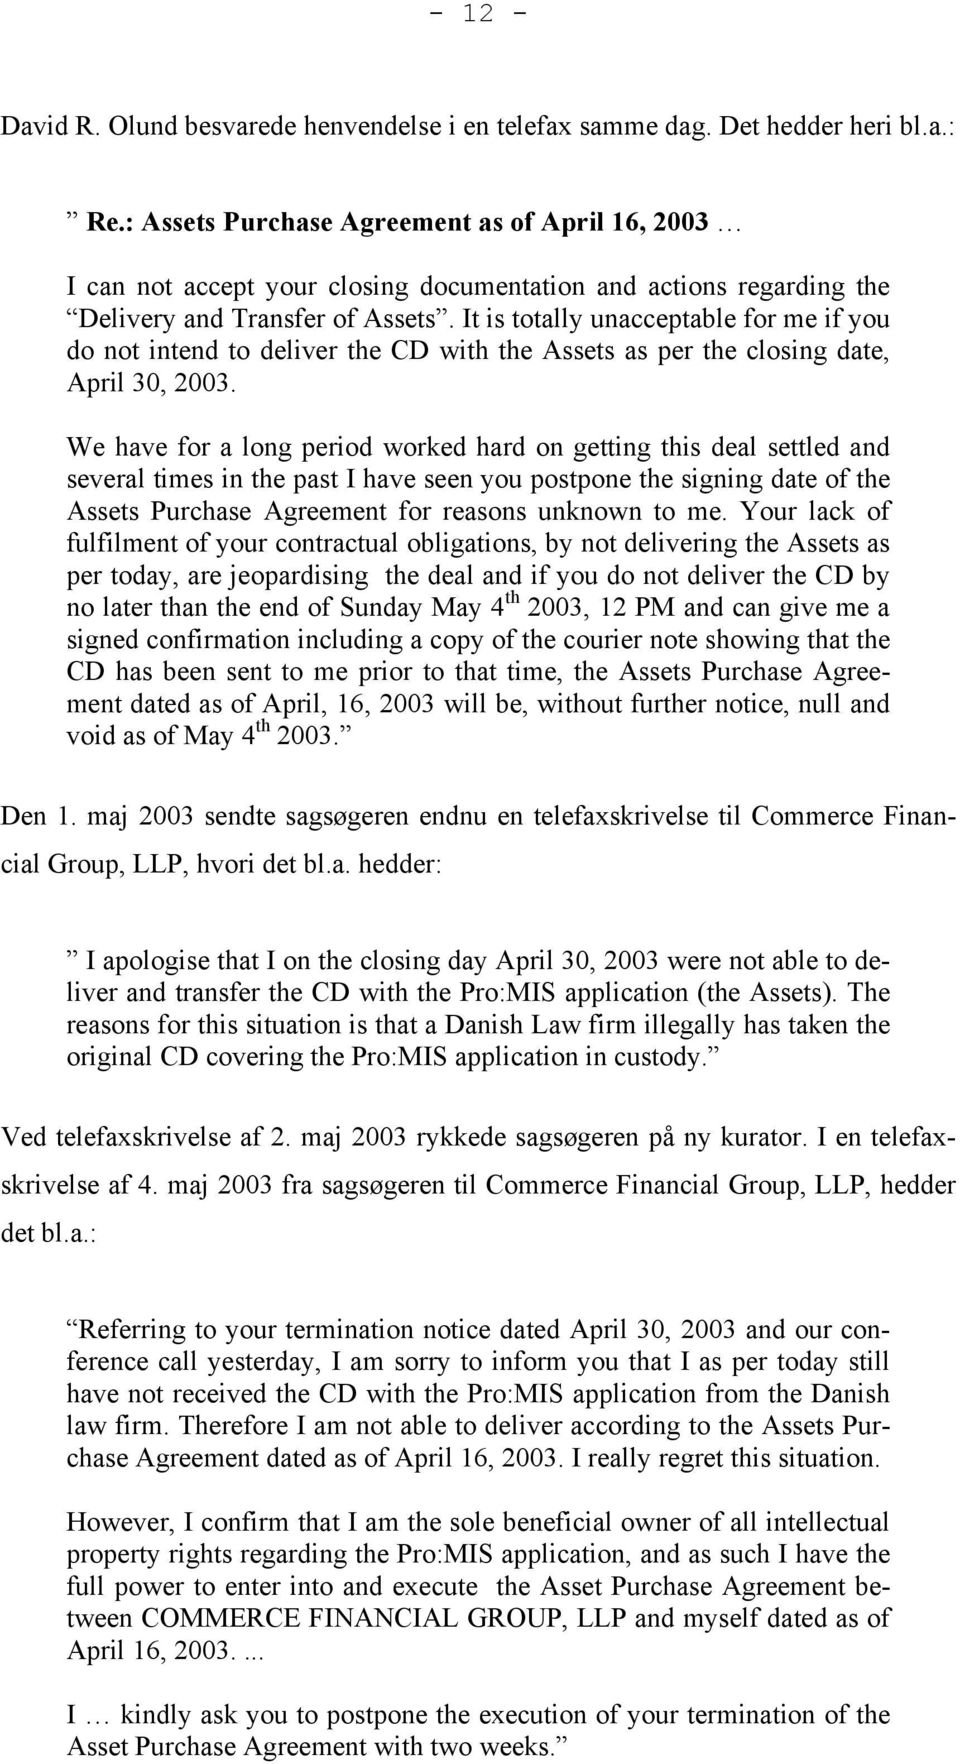 It is totally unacceptable for me if you do not intend to deliver the CD with the Assets as per the closing date, April 30, 2003.